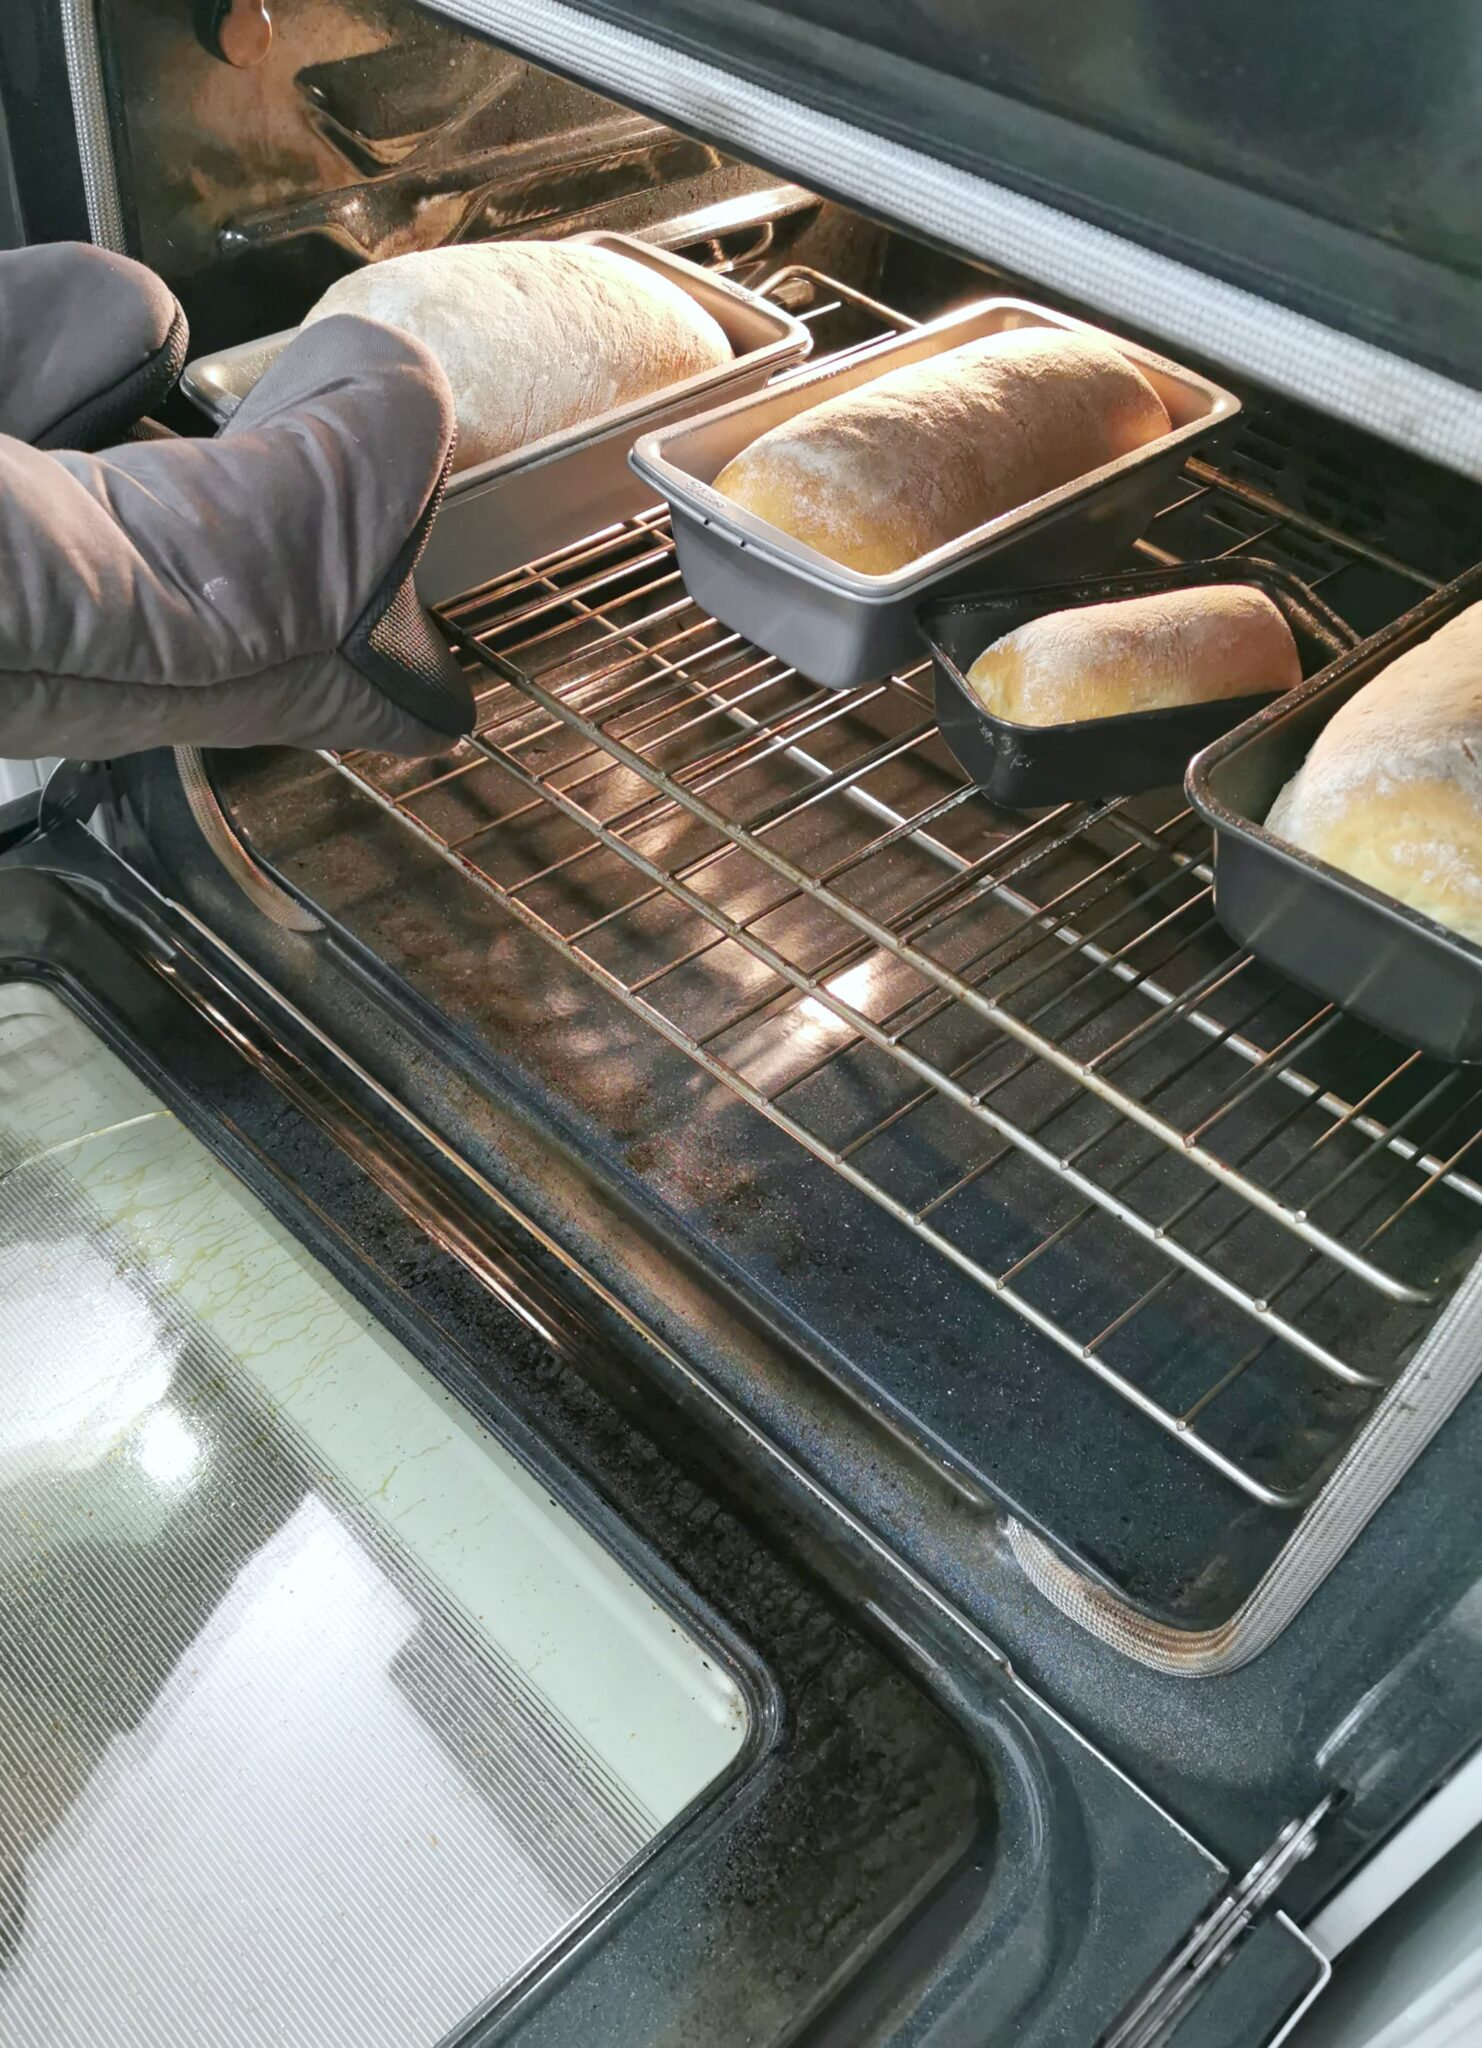 Bread in pans being pulled out of the oven.